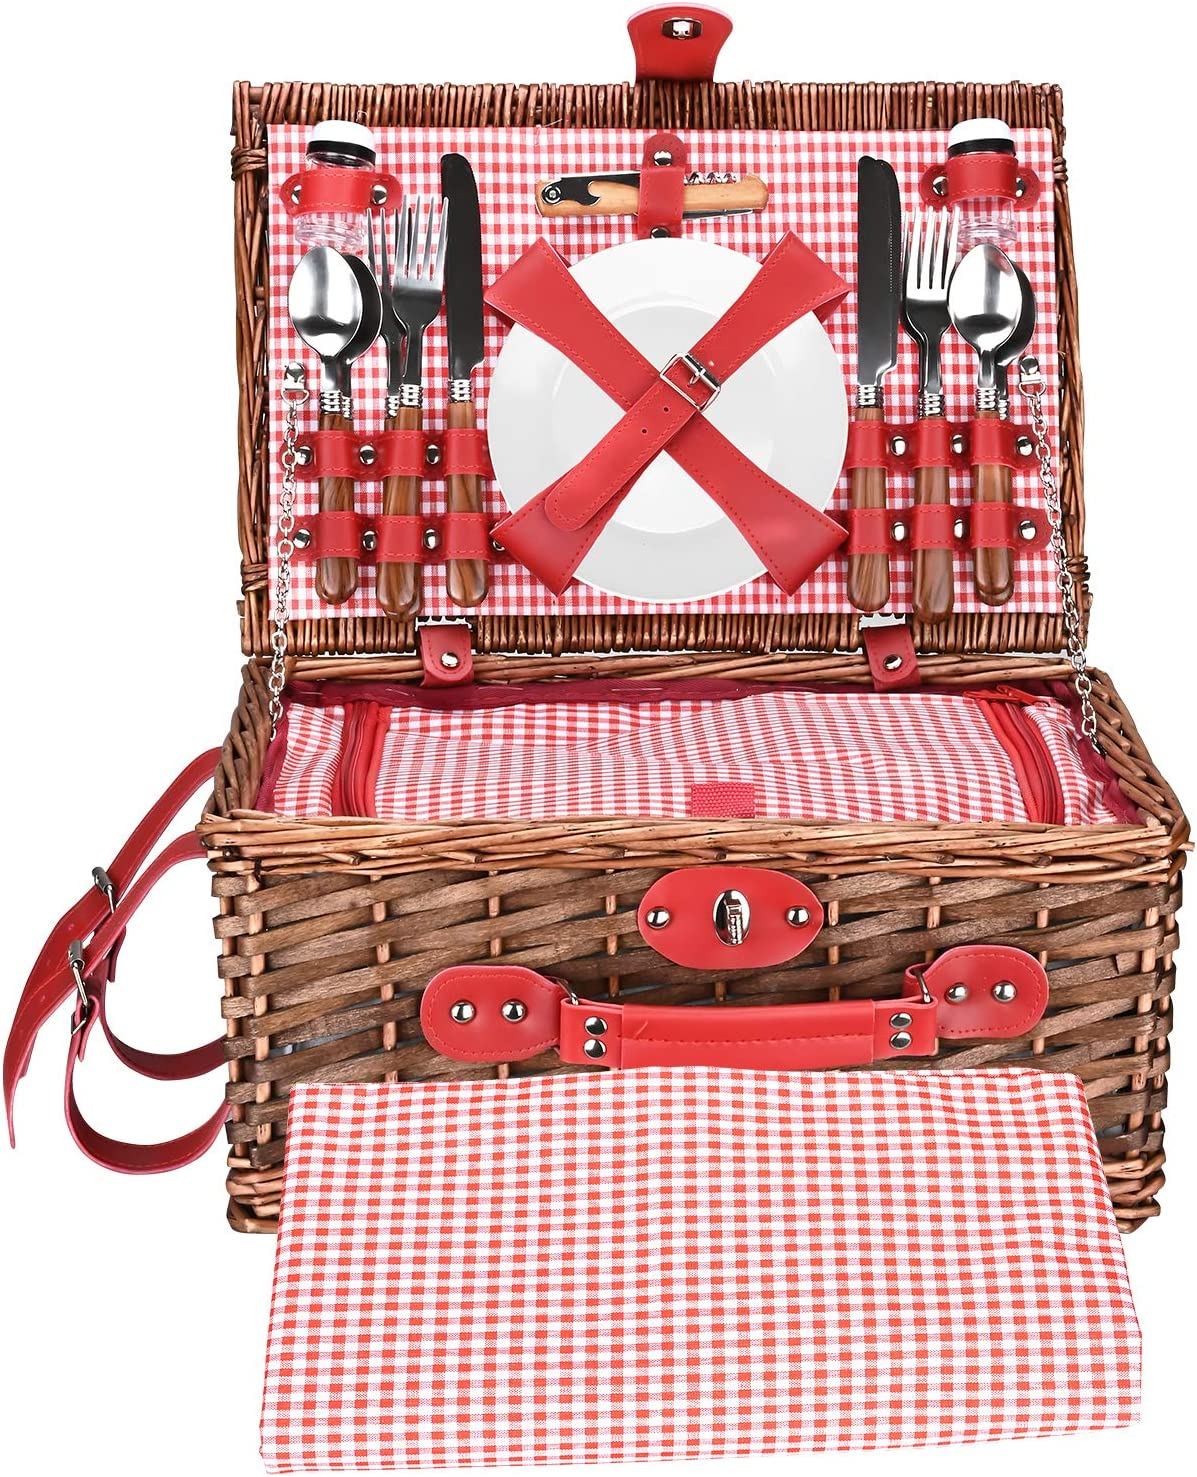 XUEMEI OFFicial Max 66% OFF site Rattan Hampers Picnic Basket Classic Family Set 4 for